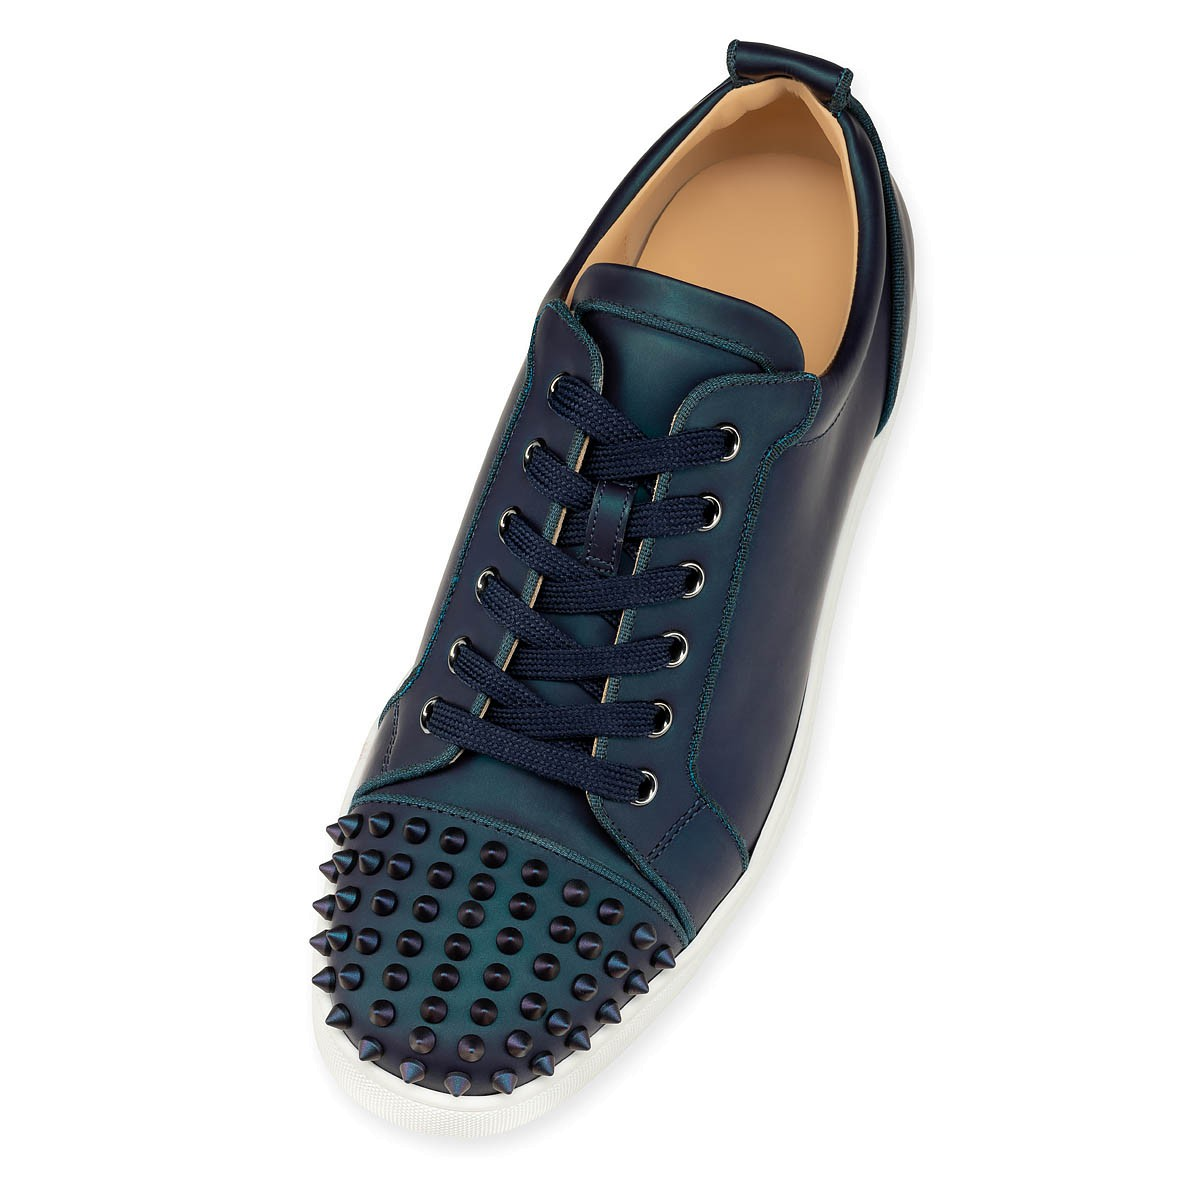 Souliers - Louis Junior Spikes Orlato - Christian Louboutin